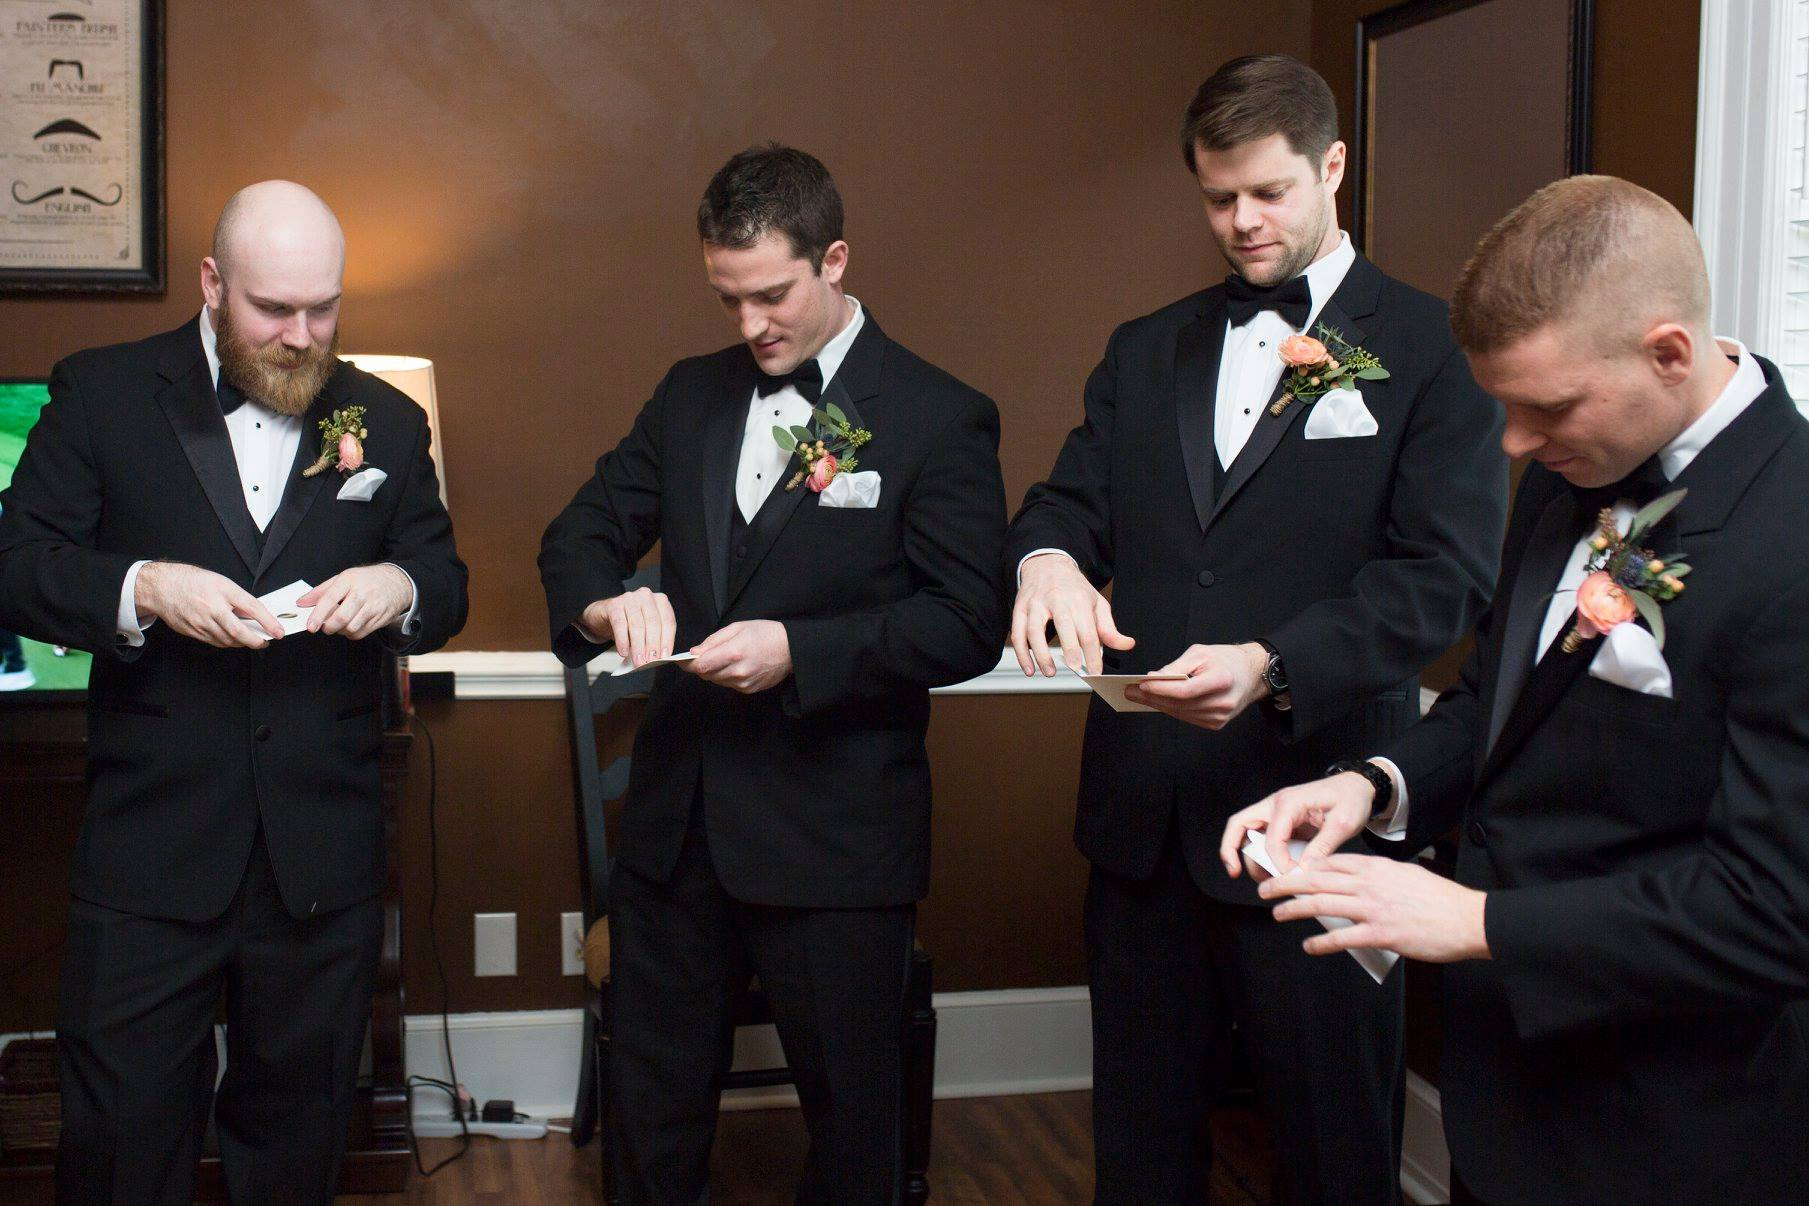 Groomsmen opening thank you cards before wedding ceremony at Separk Mansion captured by Soussou Productions